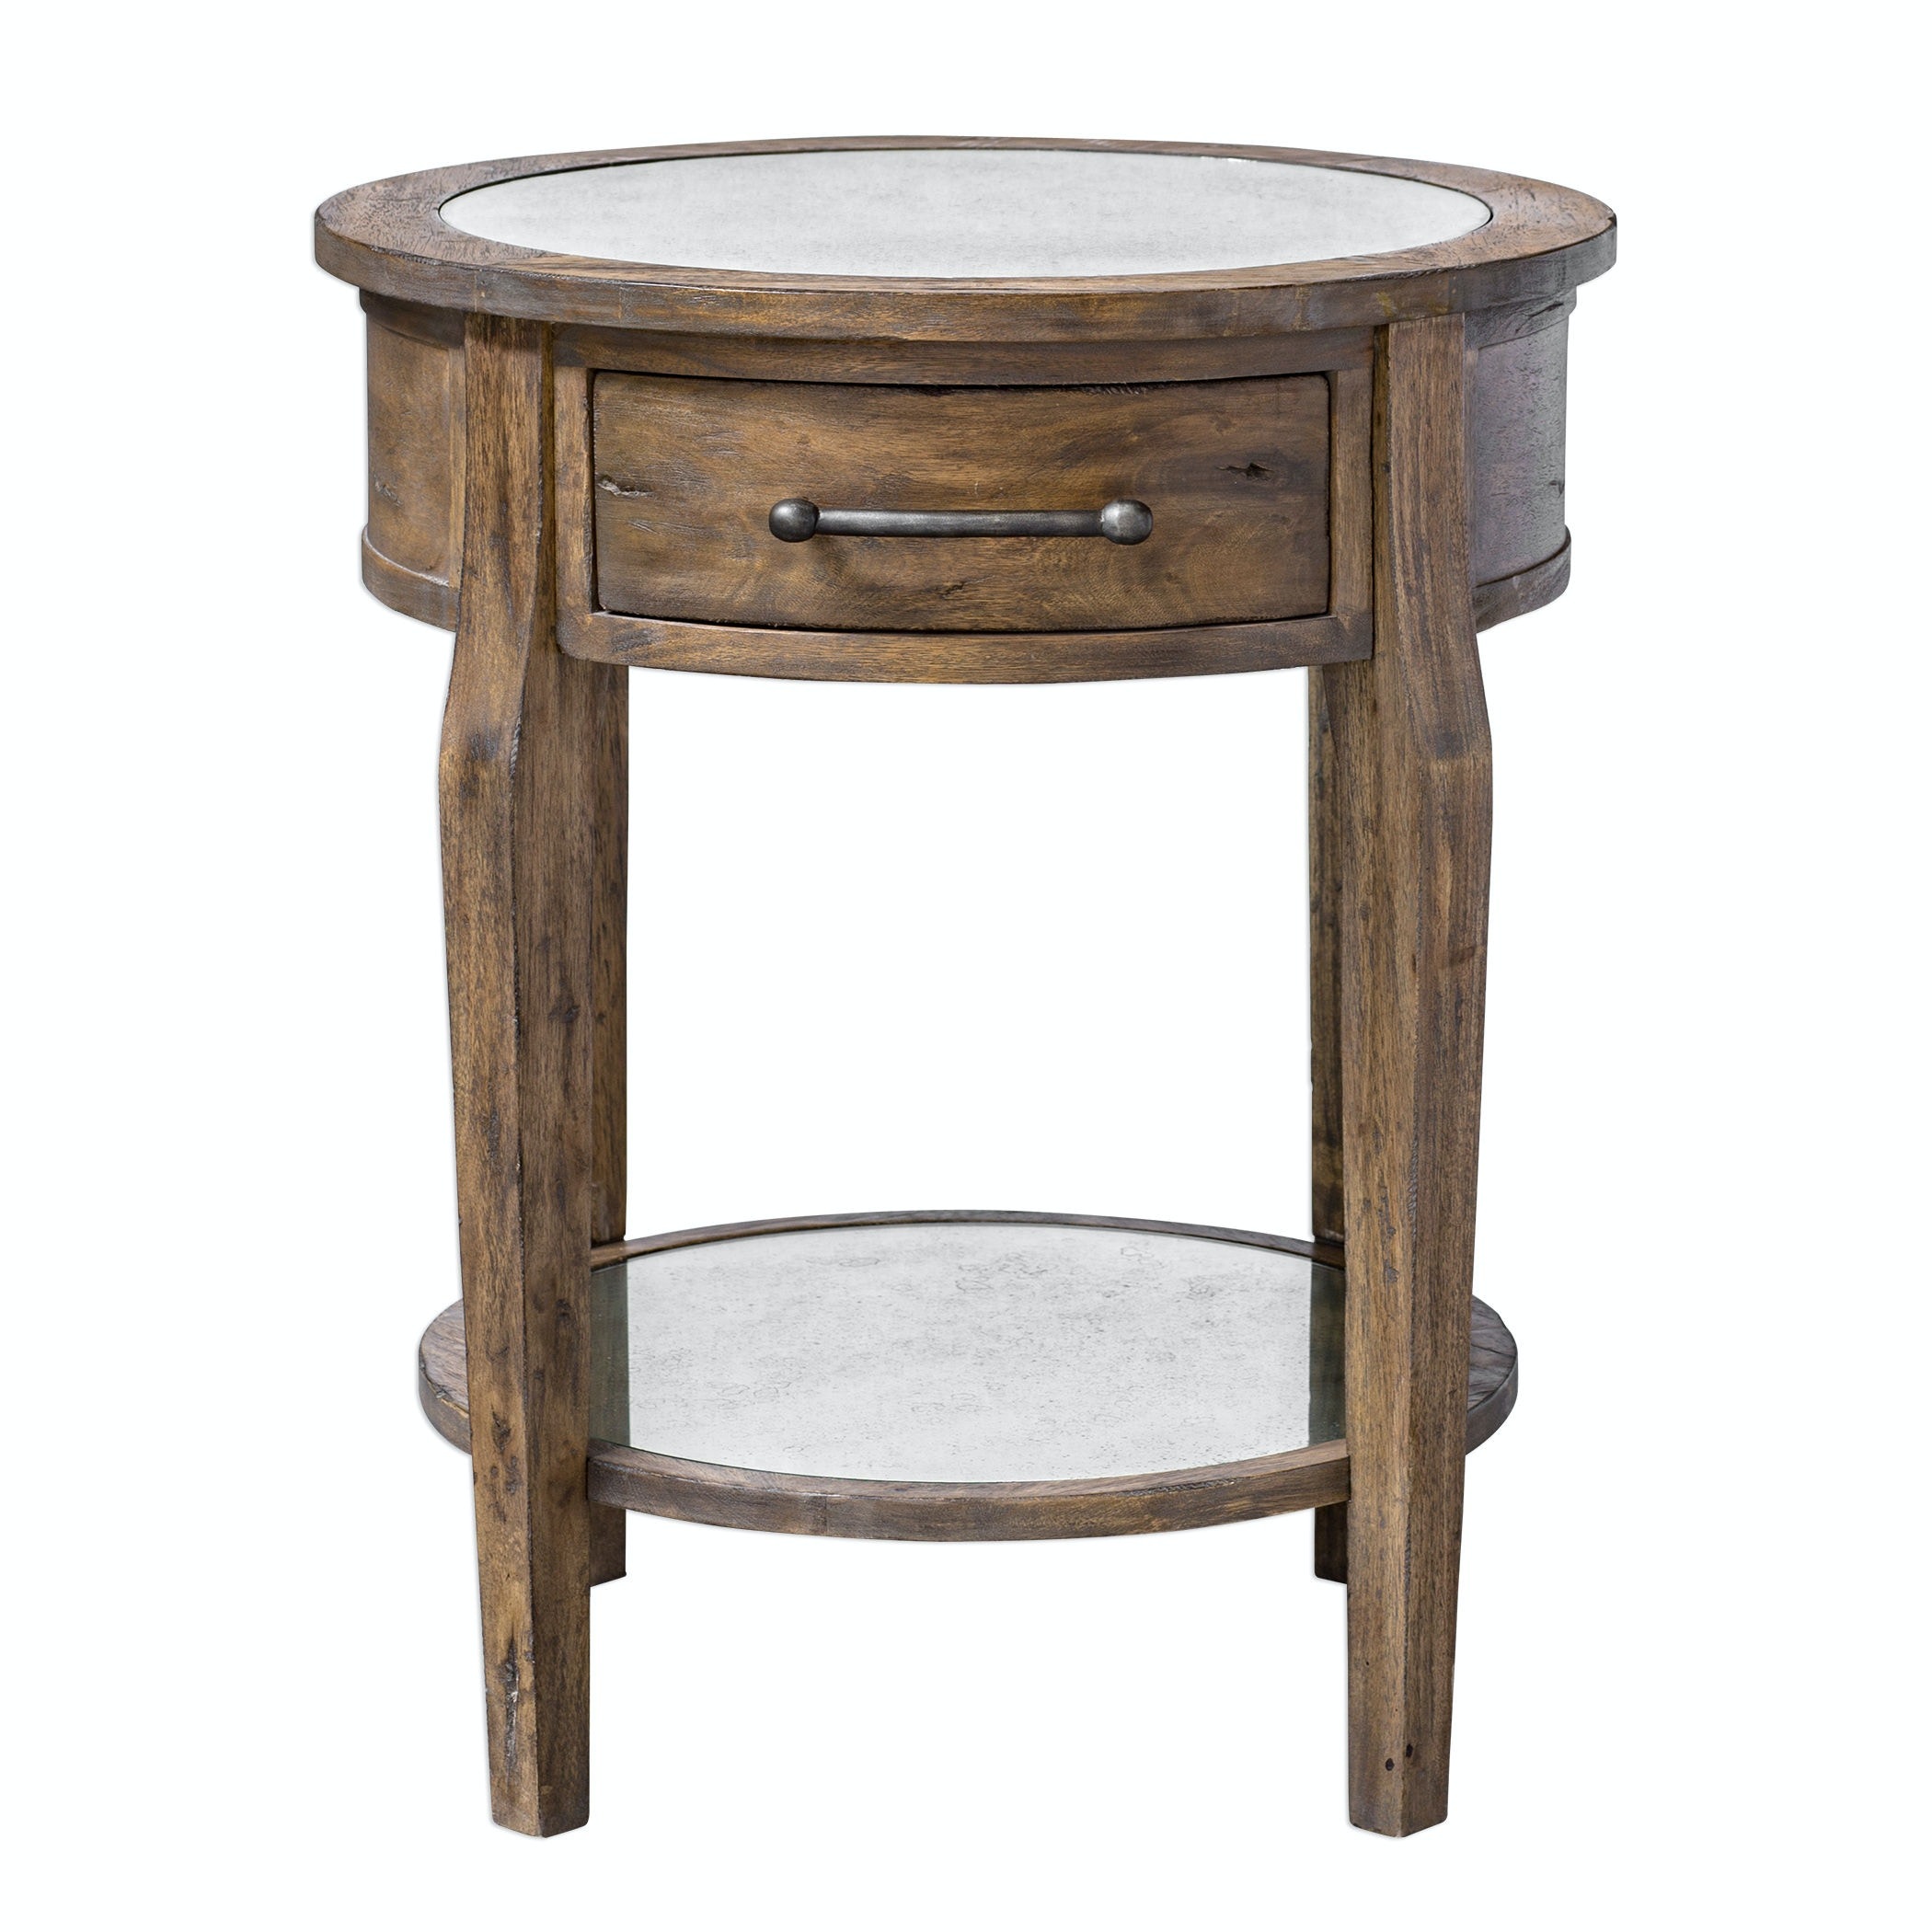 Uttermost Raelynn Wood Lamp Table UT25418 From Walter E. Smithe Furniture +  Design